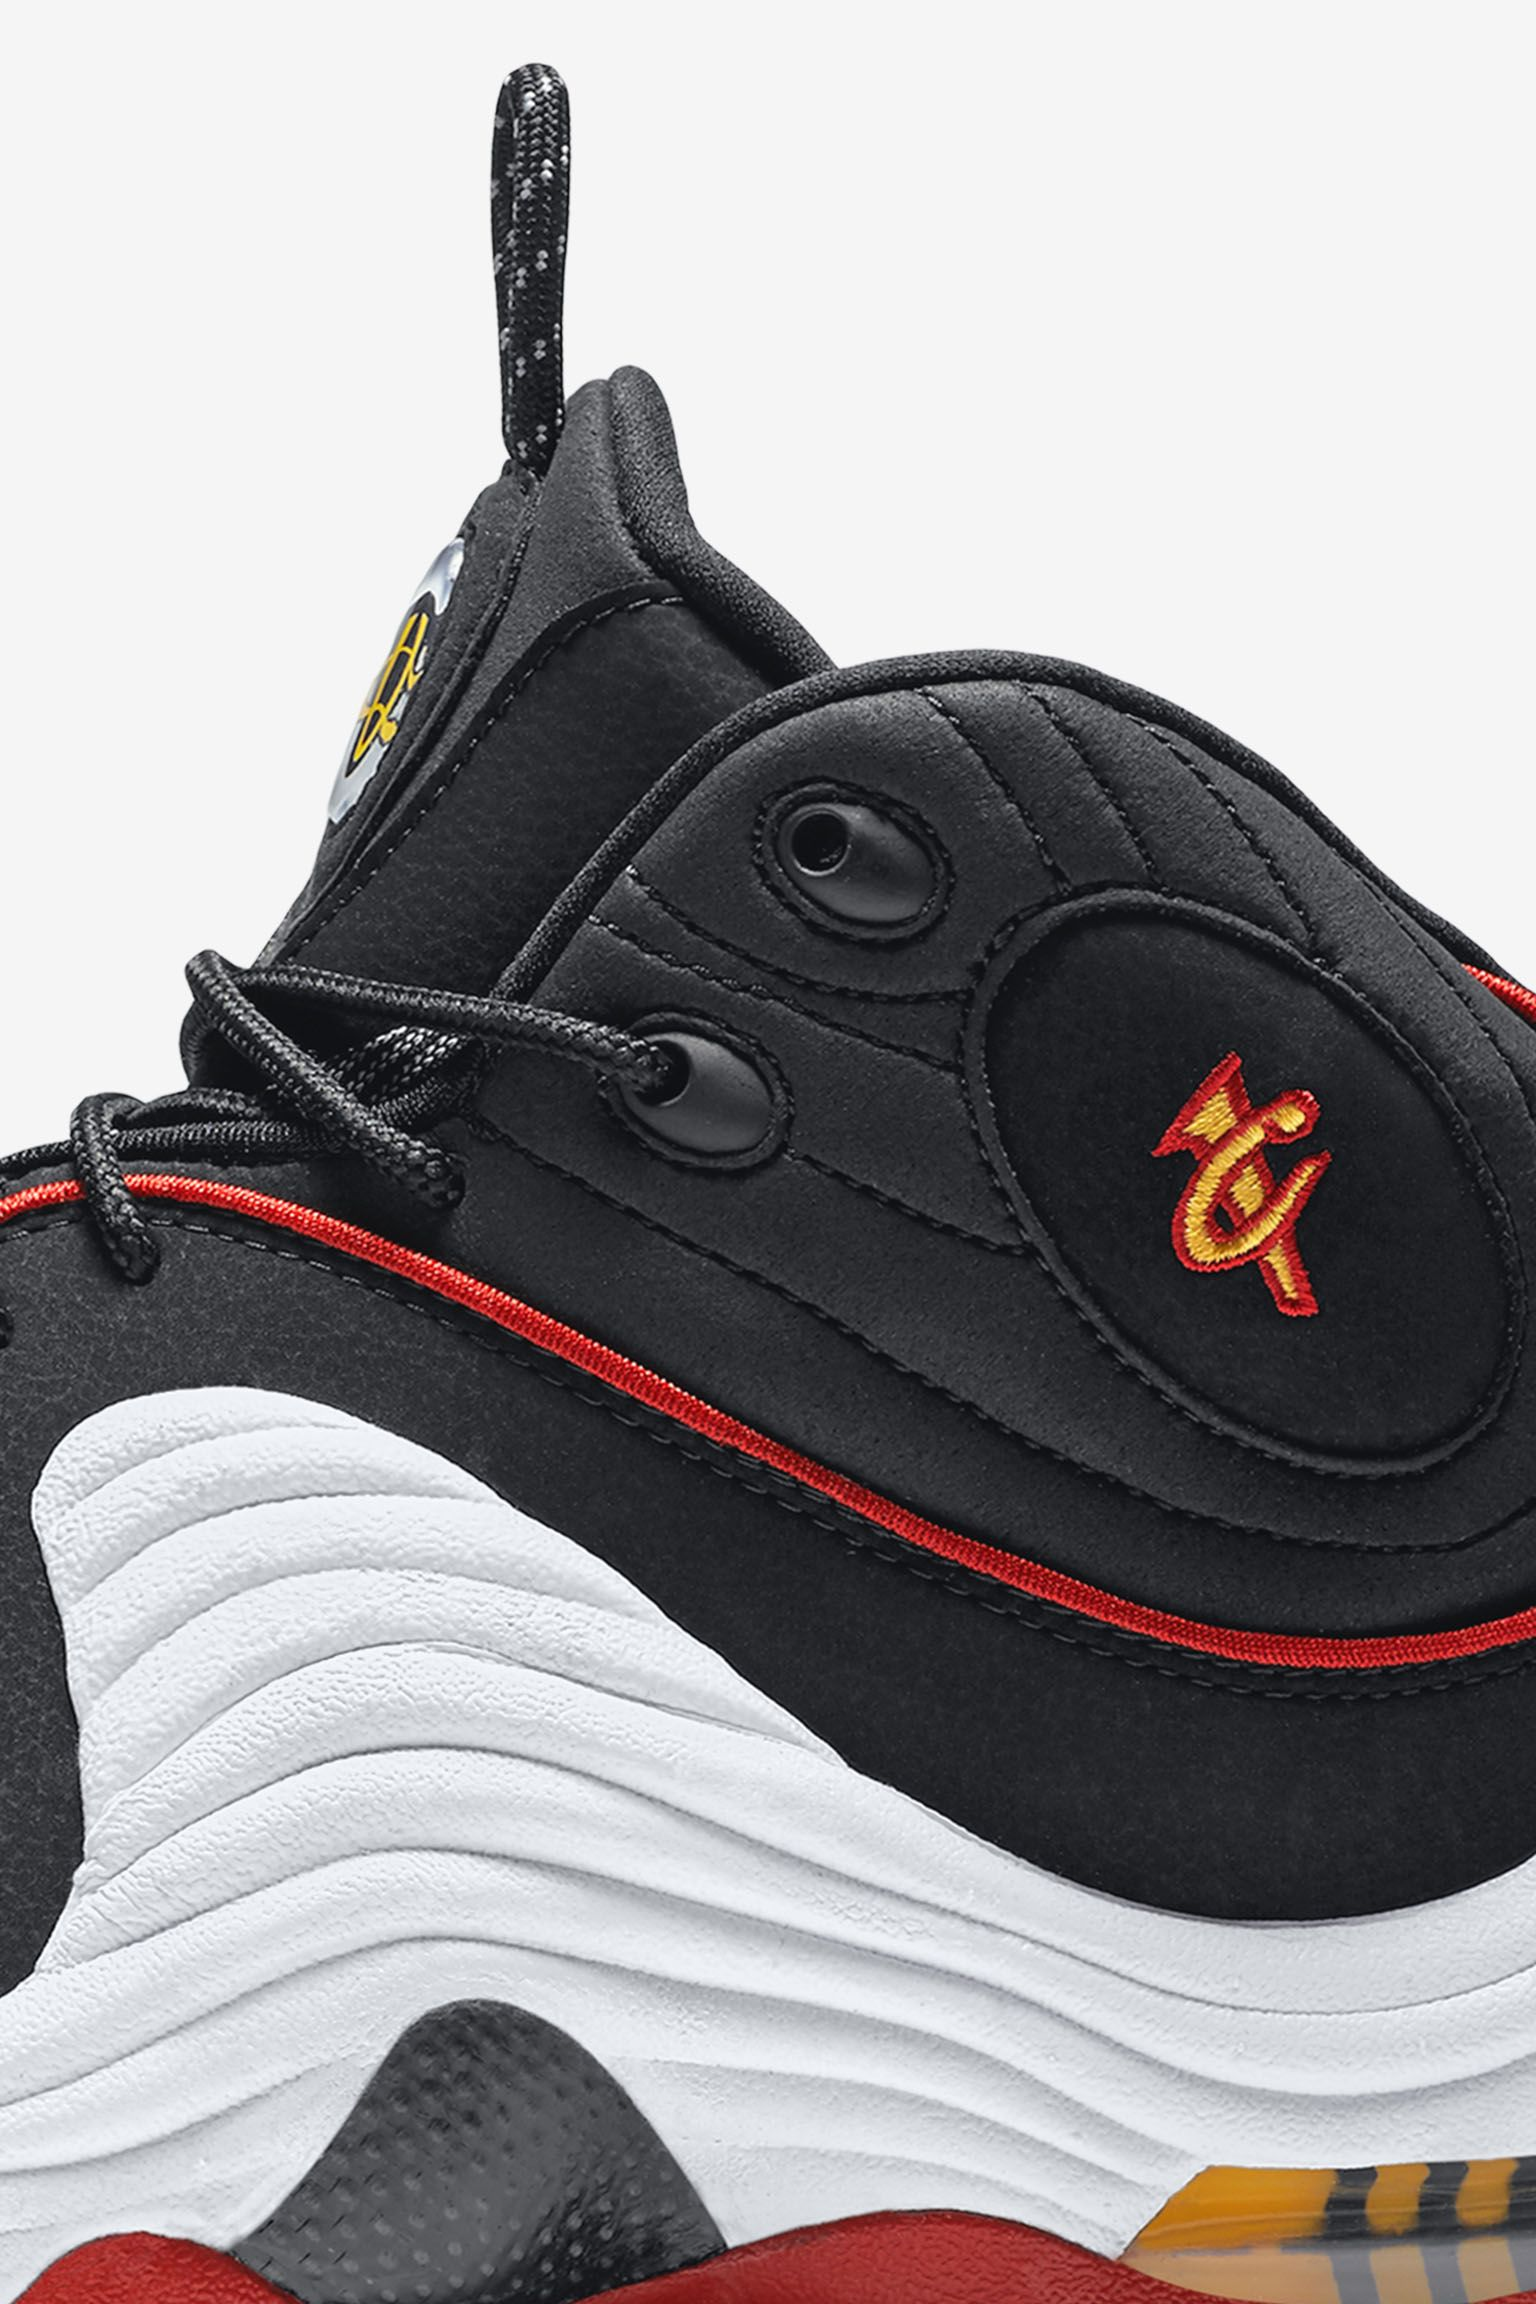 Nike Air Penny 2 'Hot Hand' Release Date